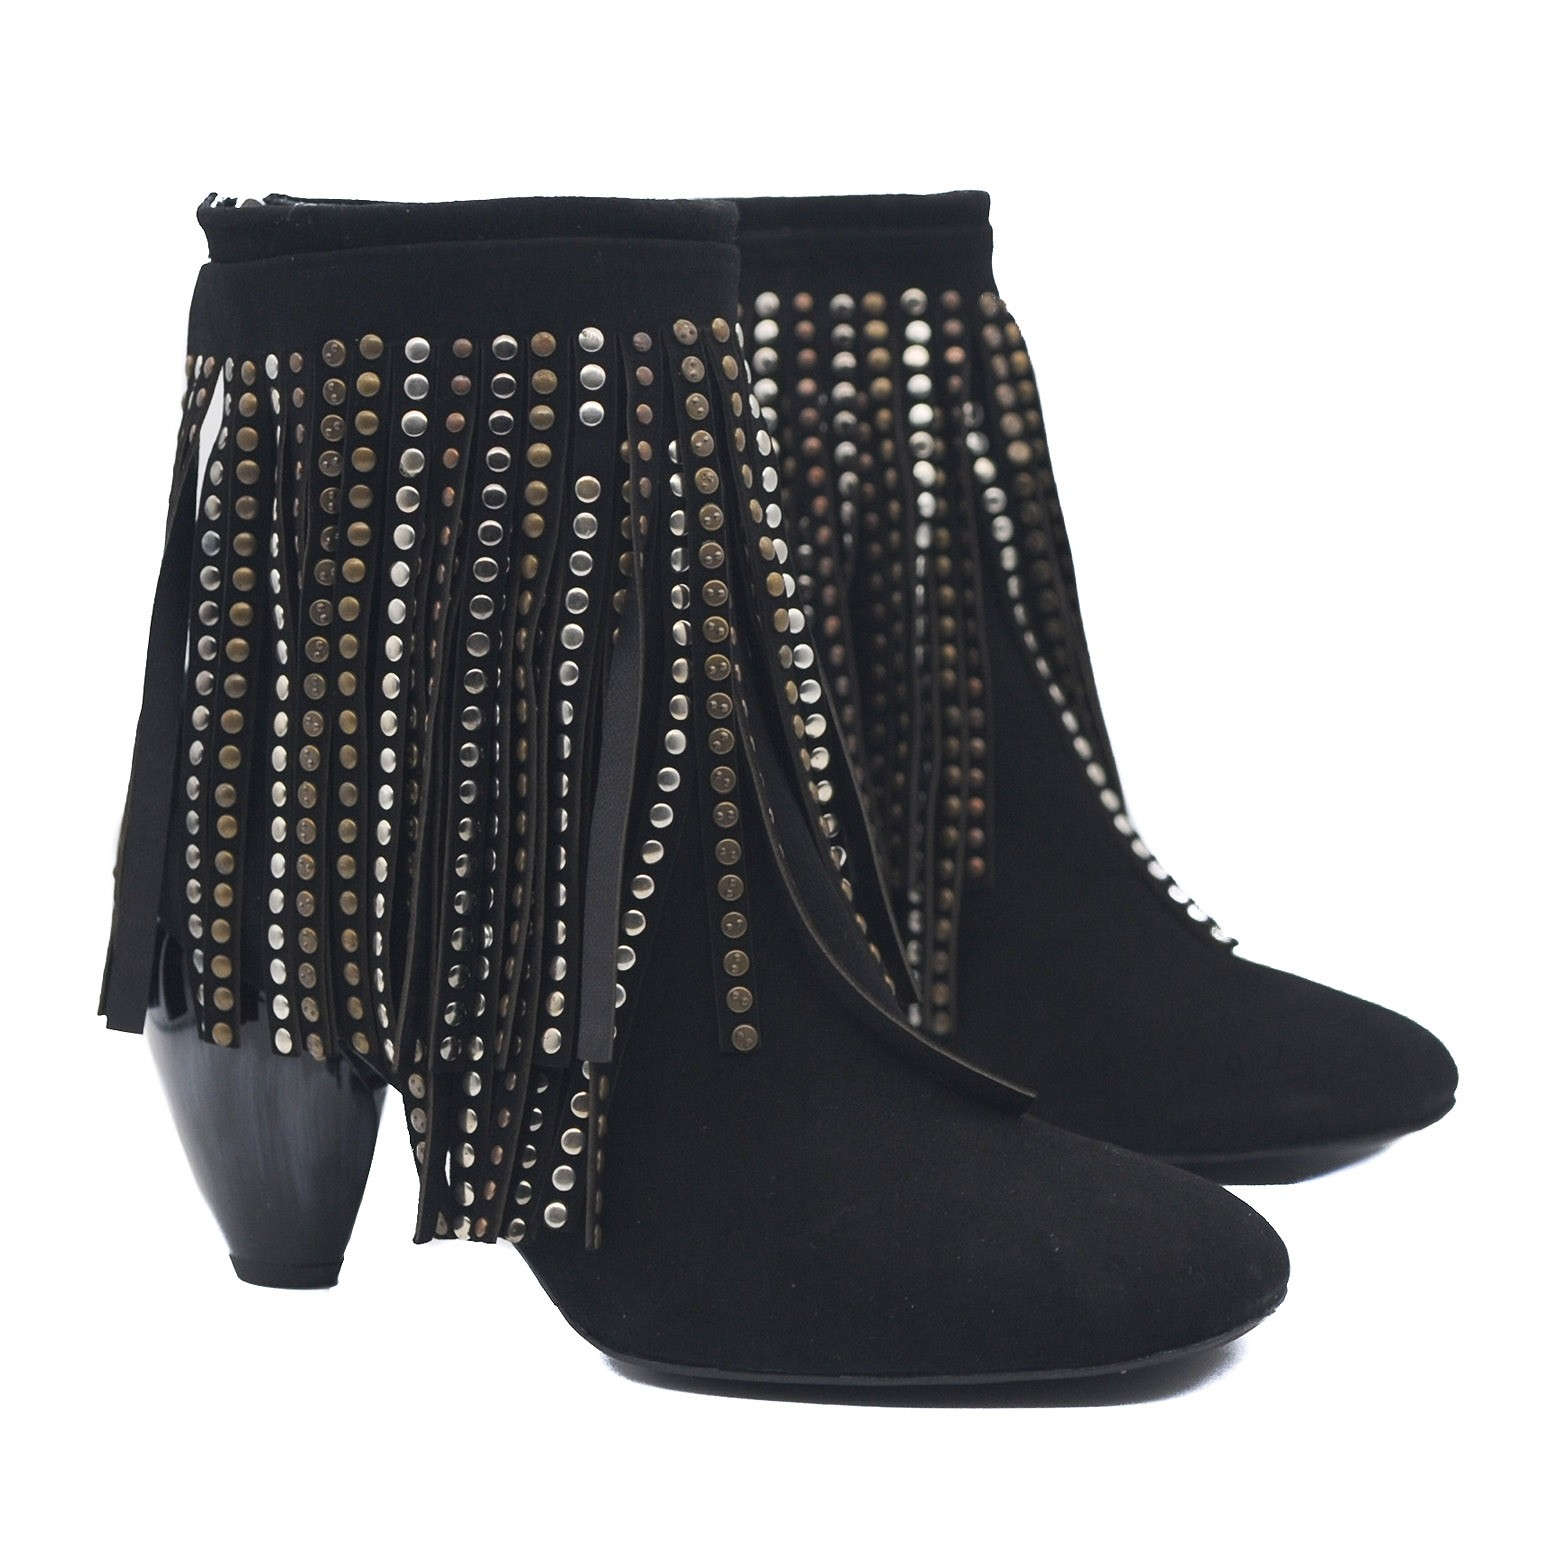 Goody2Shoes Suede Black Ankle Boots with Beaded Fringing and Tulip Shaped Heel